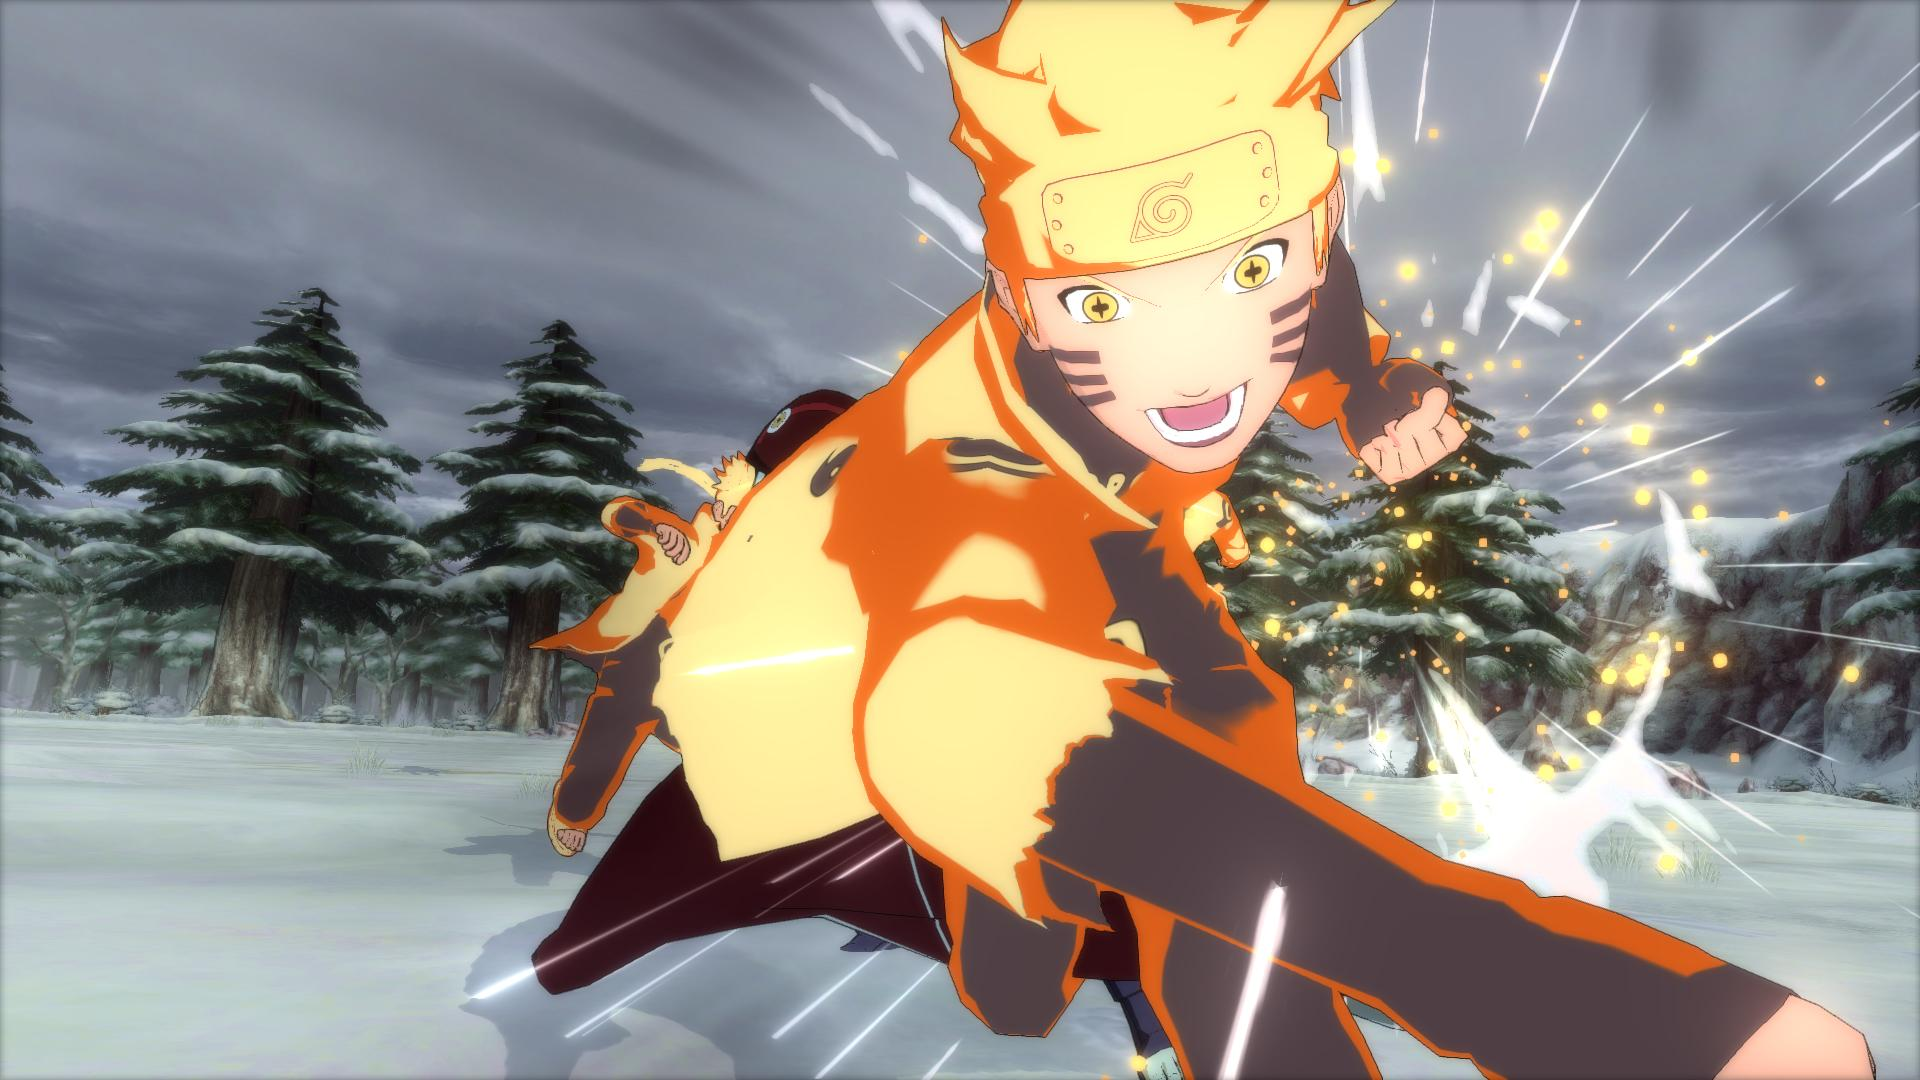 Naruto Shippuden: Ultimate Ninja Storm 4 HD Wallpapers, Pictures, Images